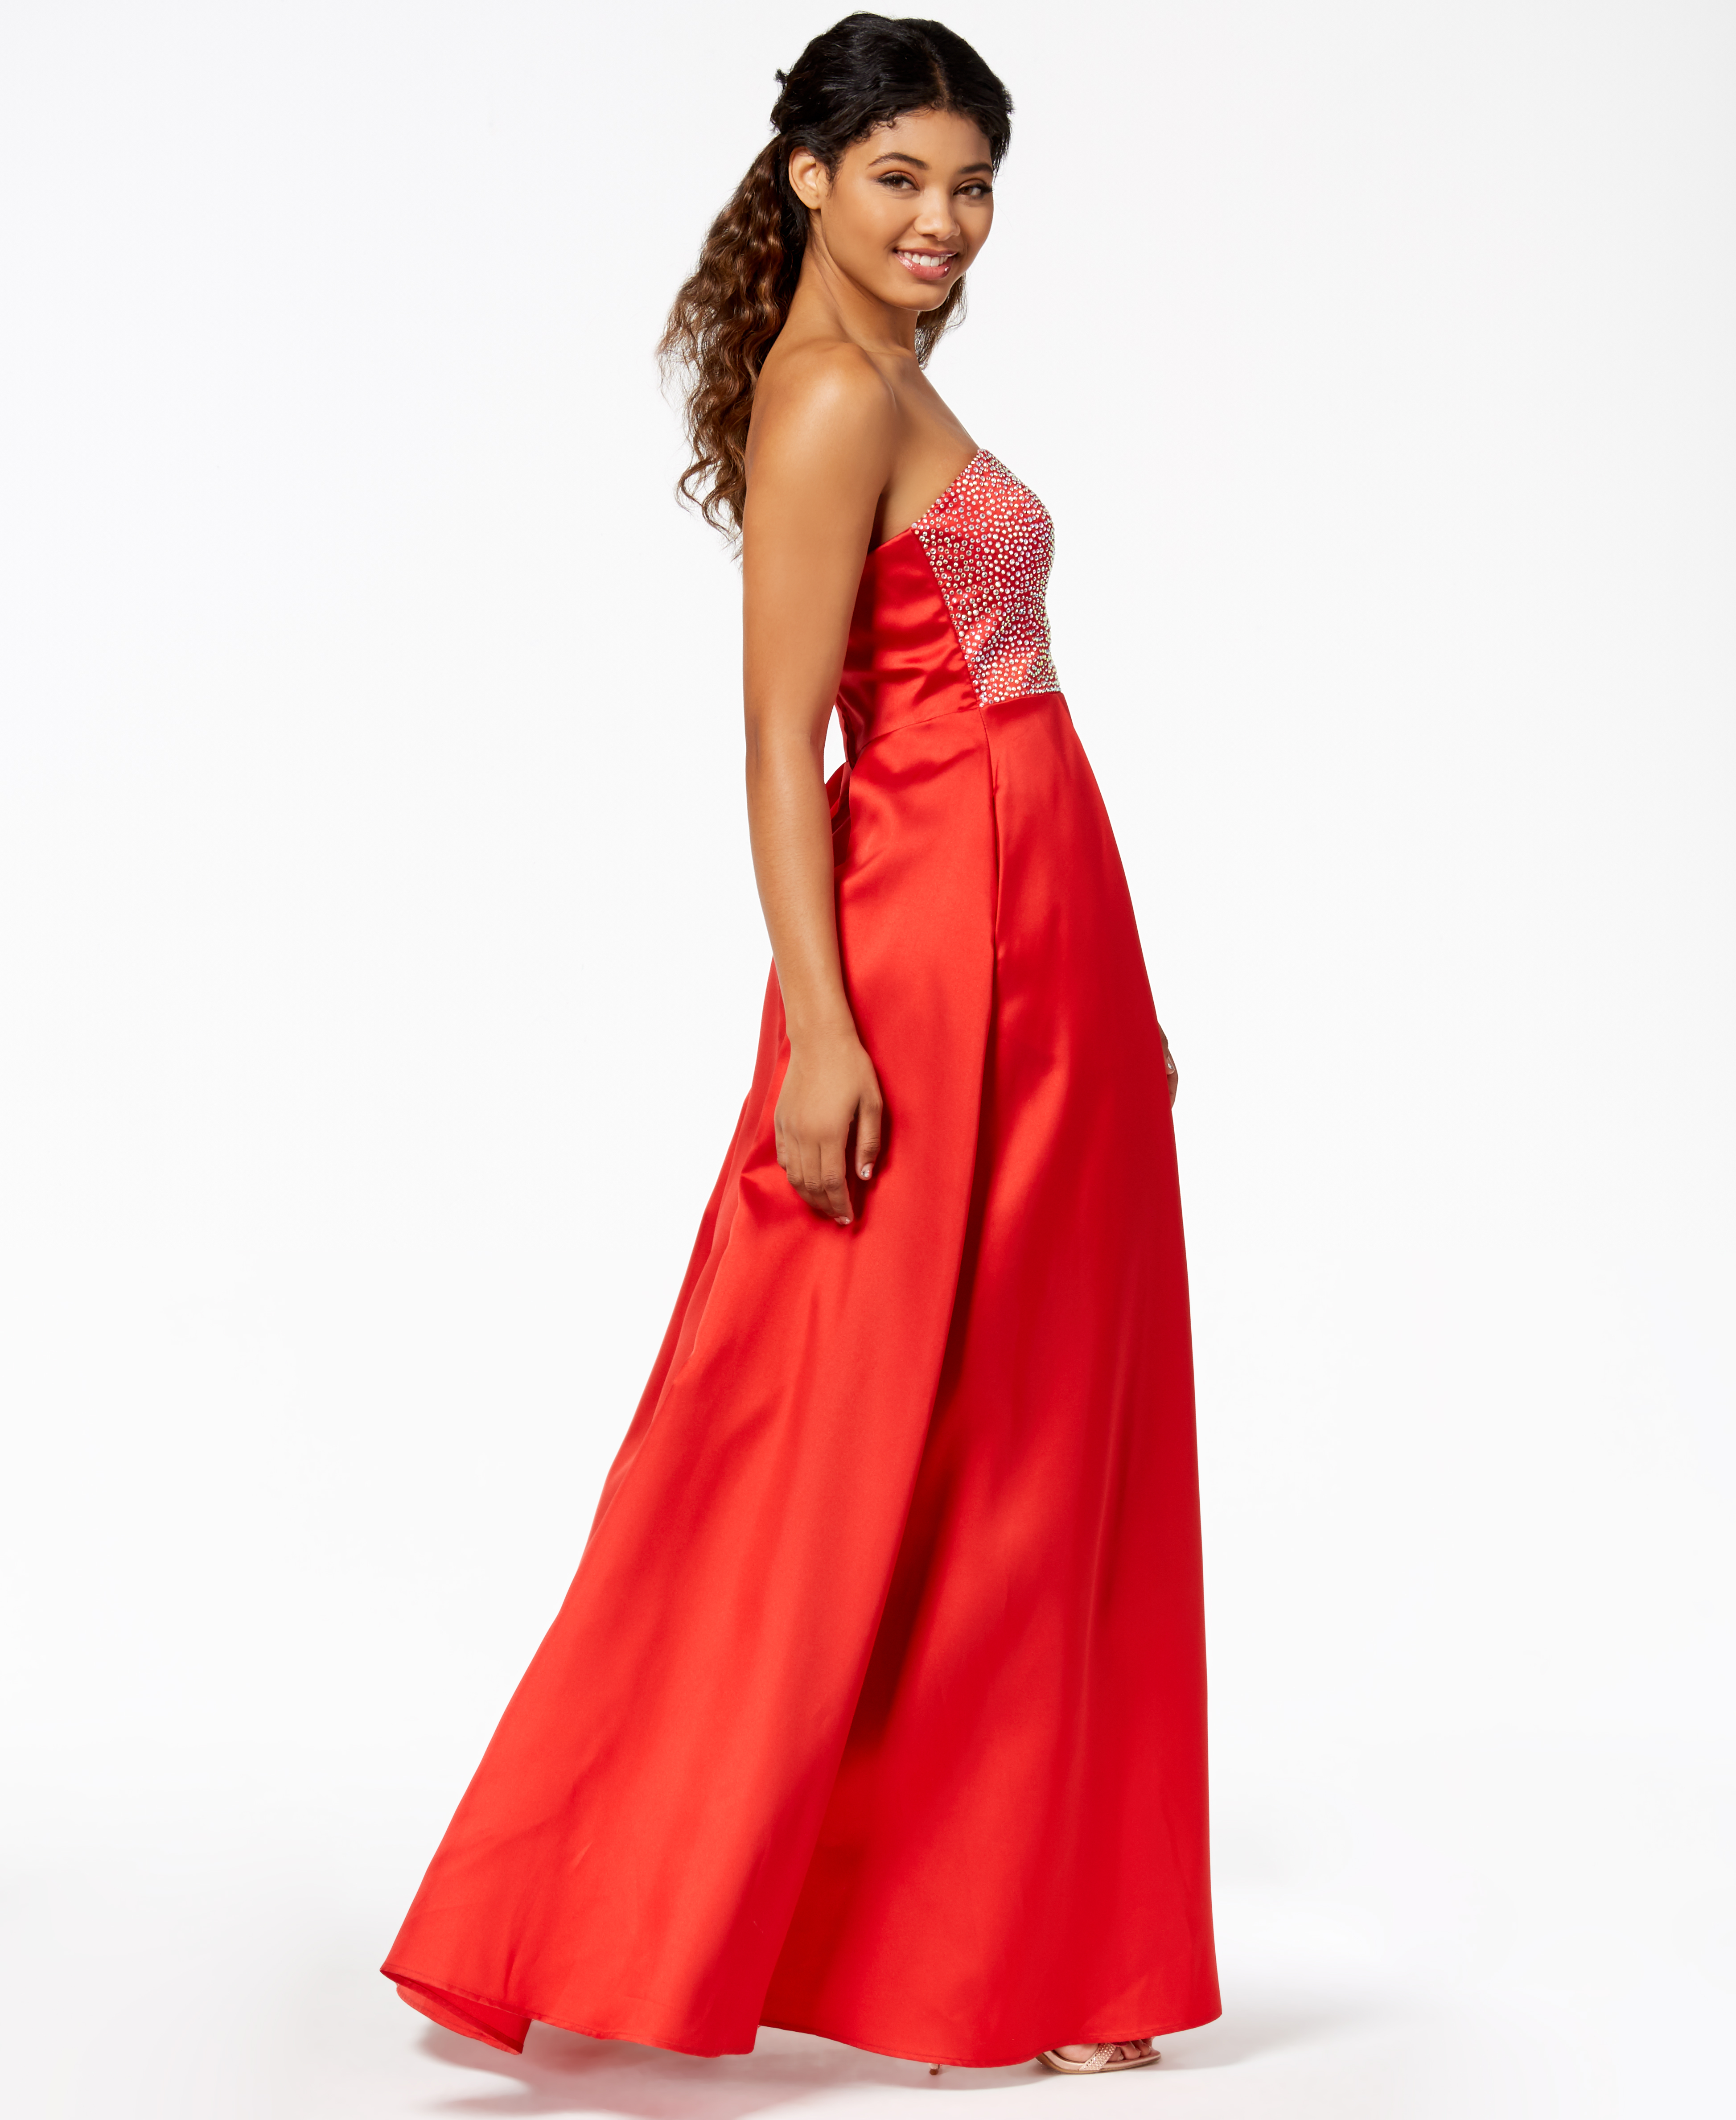 Donate Formal Dresses Gold Coast Dacc